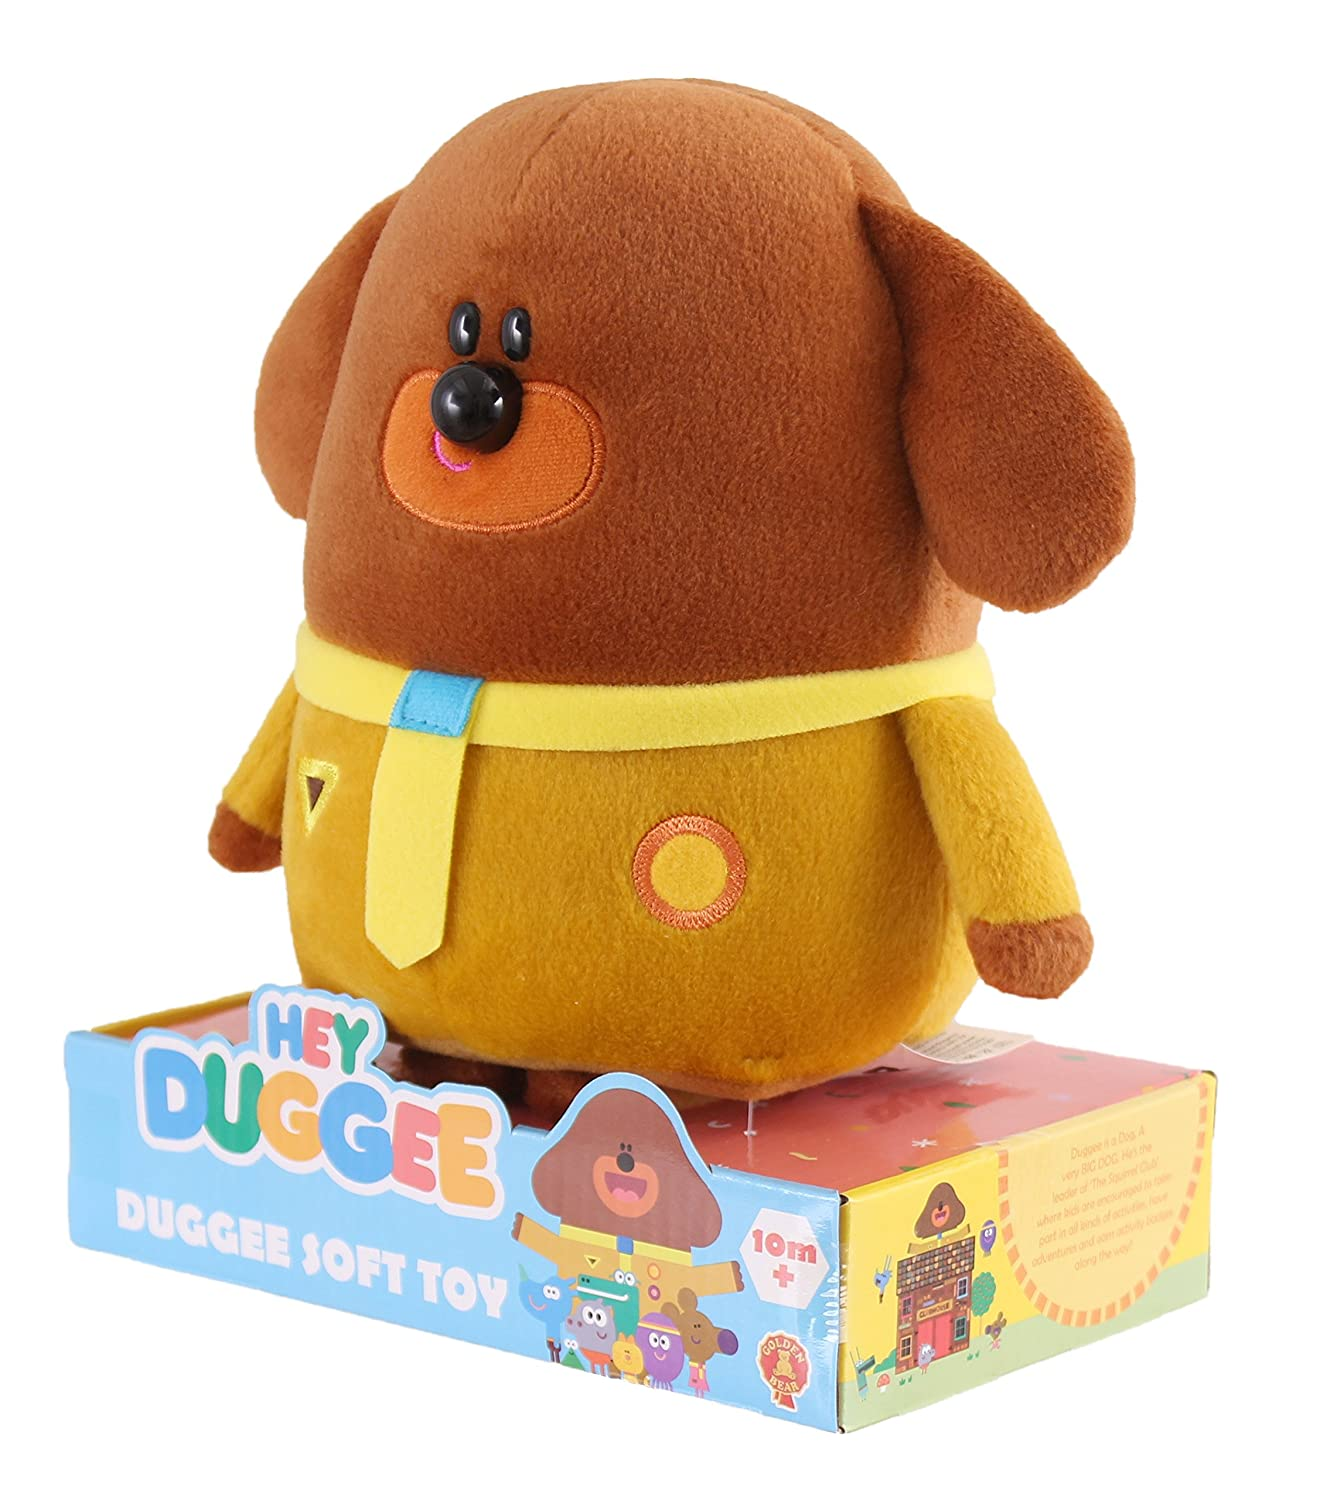 Hey Duggee Soft Toy Golden Bear Products Amazon Toys & Games